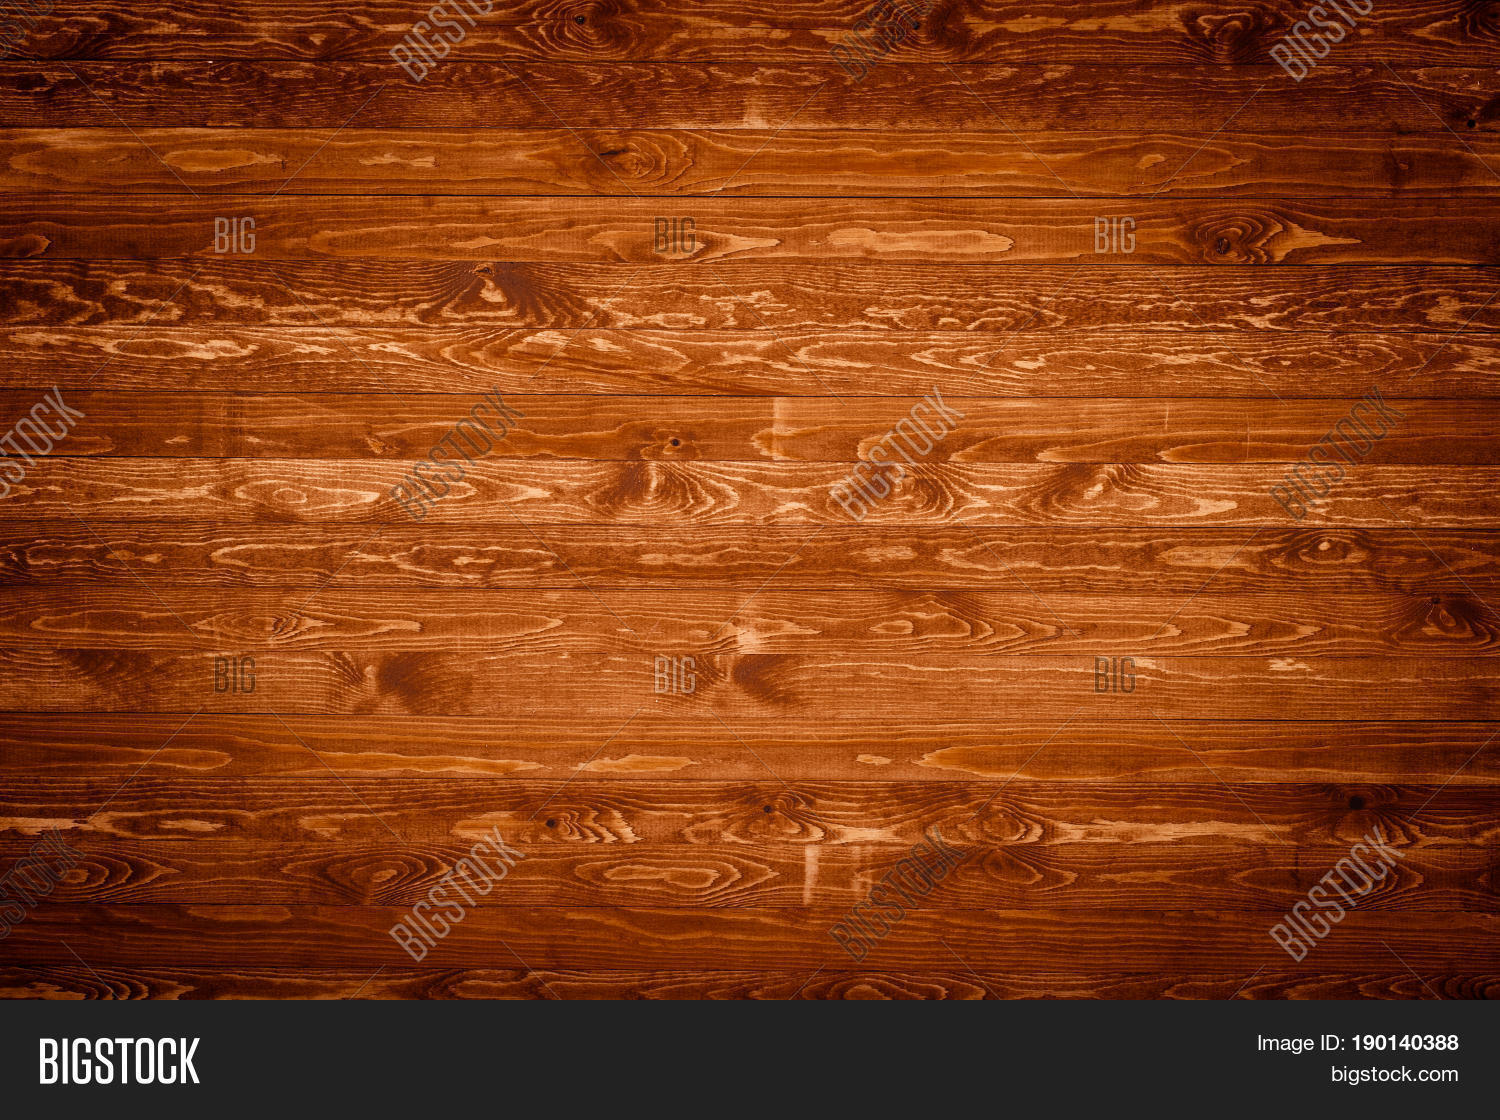 Wooden table background pattern - Wooden Table Wooden Texture Surface With Old Natural Wooden Pattern Grunge Surface Wooden Texture